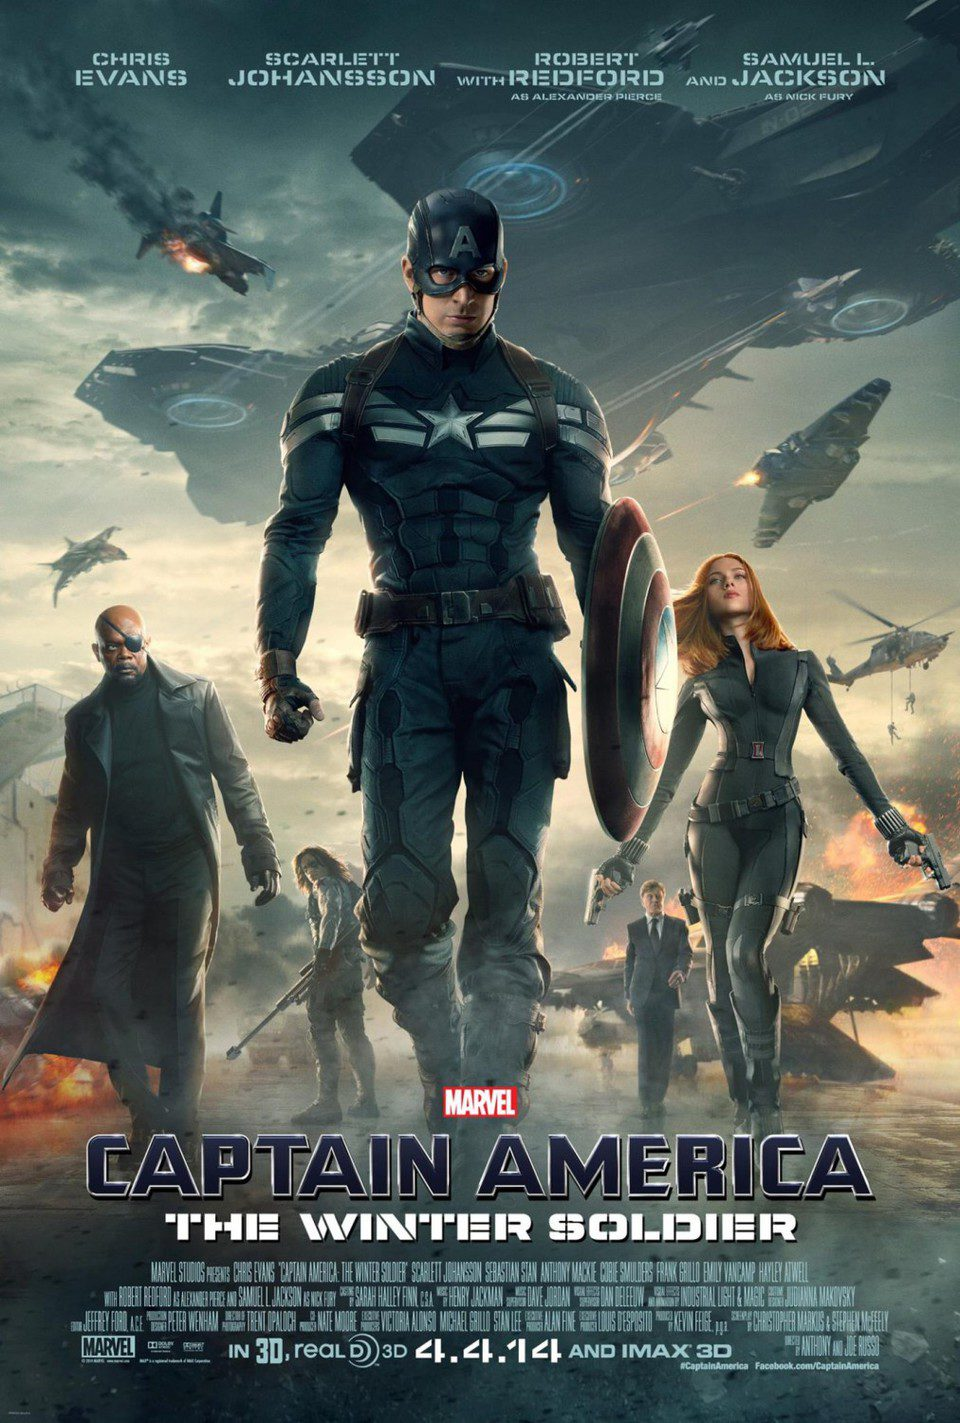 EEUU 2 poster for Captain America: The Winter Soldier